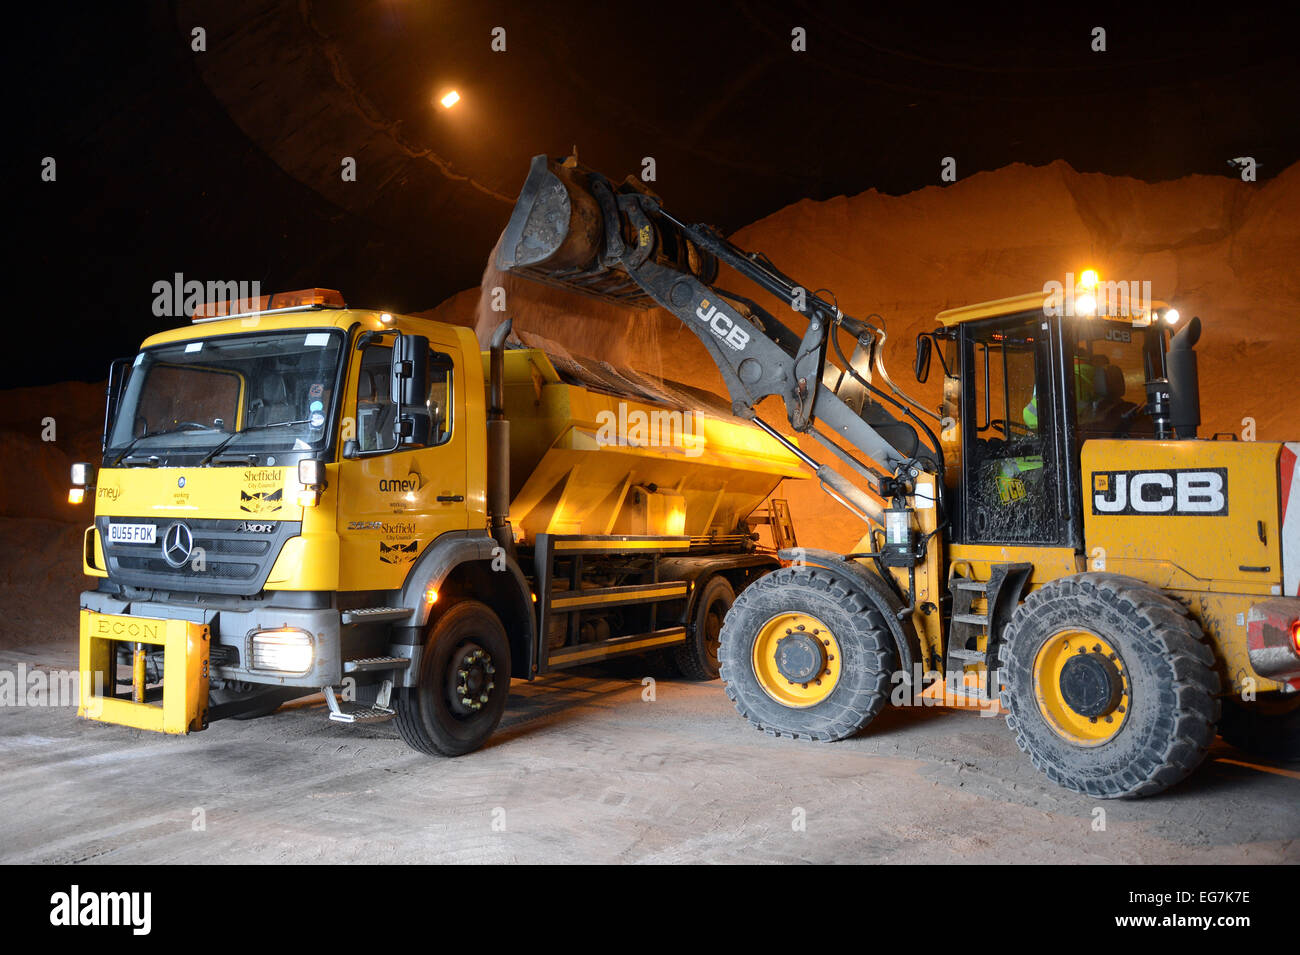 Gritters get ready to hit the roads of Sheffield are prepared at the Olive Grove Road depot as snow is forecast - Stock Image